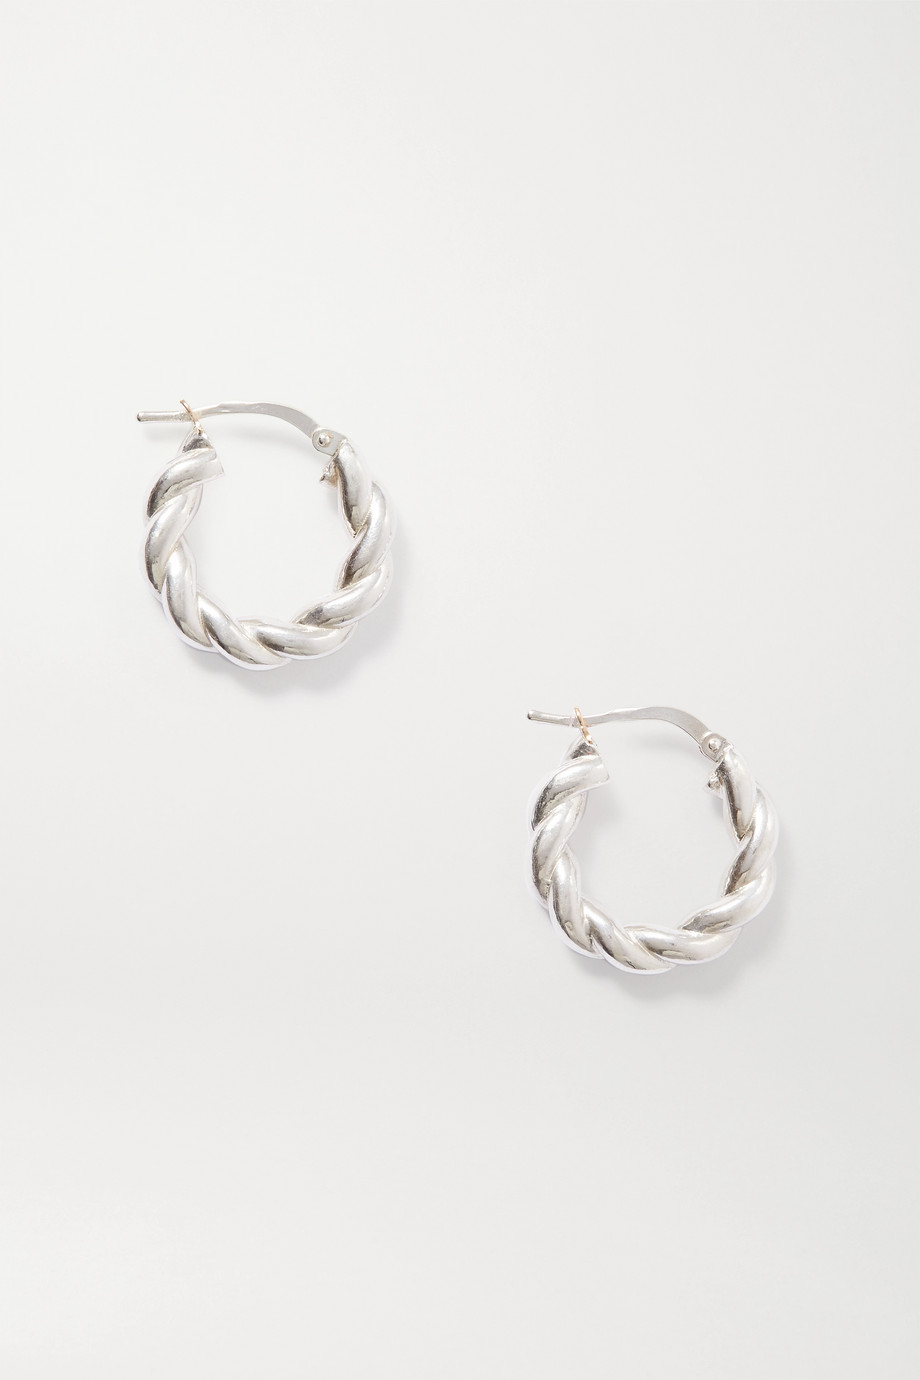 BOTTEGA VENETA Silver-tone hoop earrings